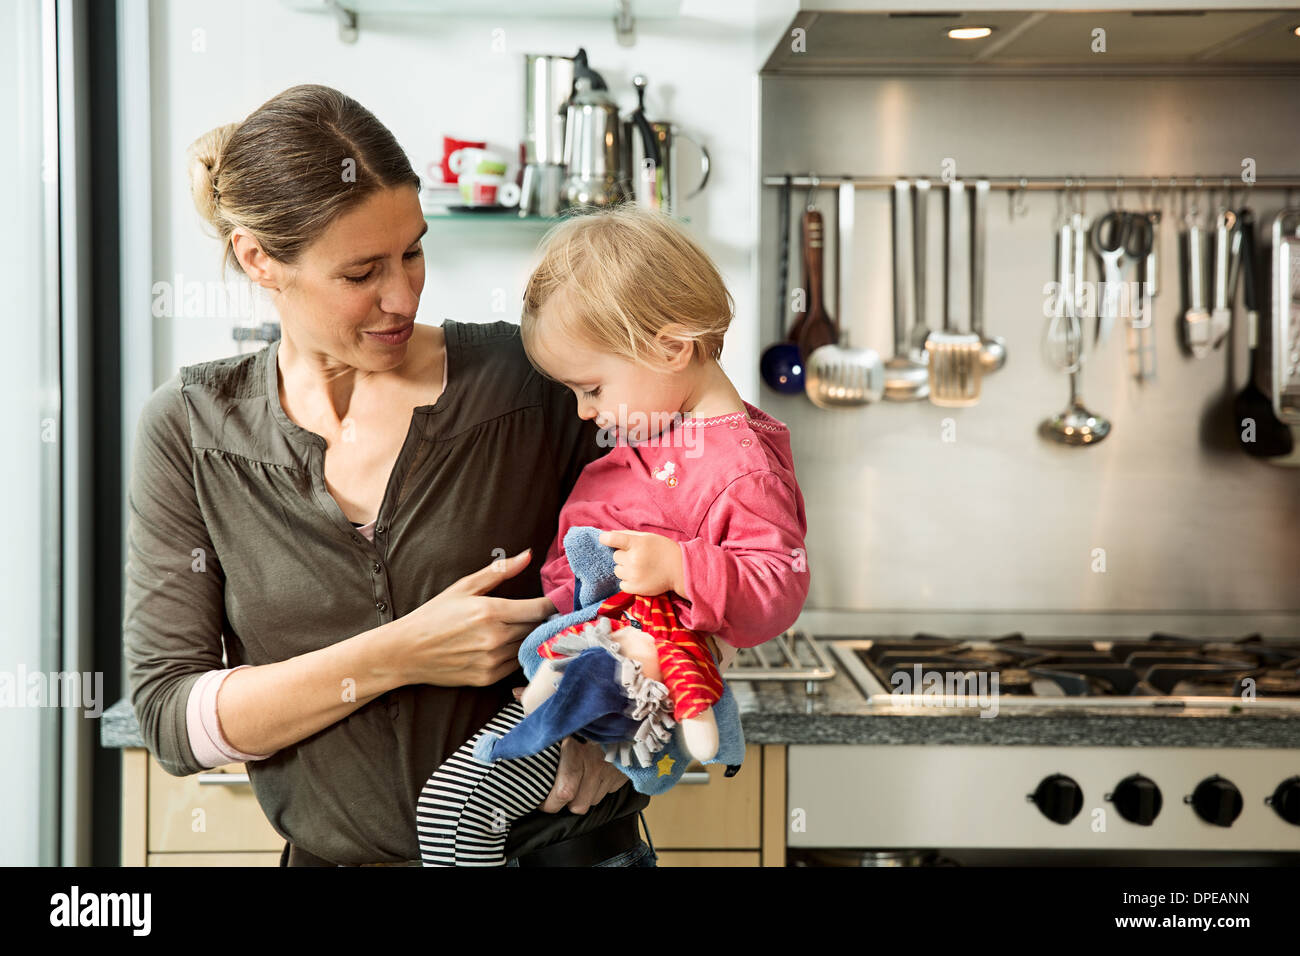 Mother carrying baby girl in kitchen Stock Photo